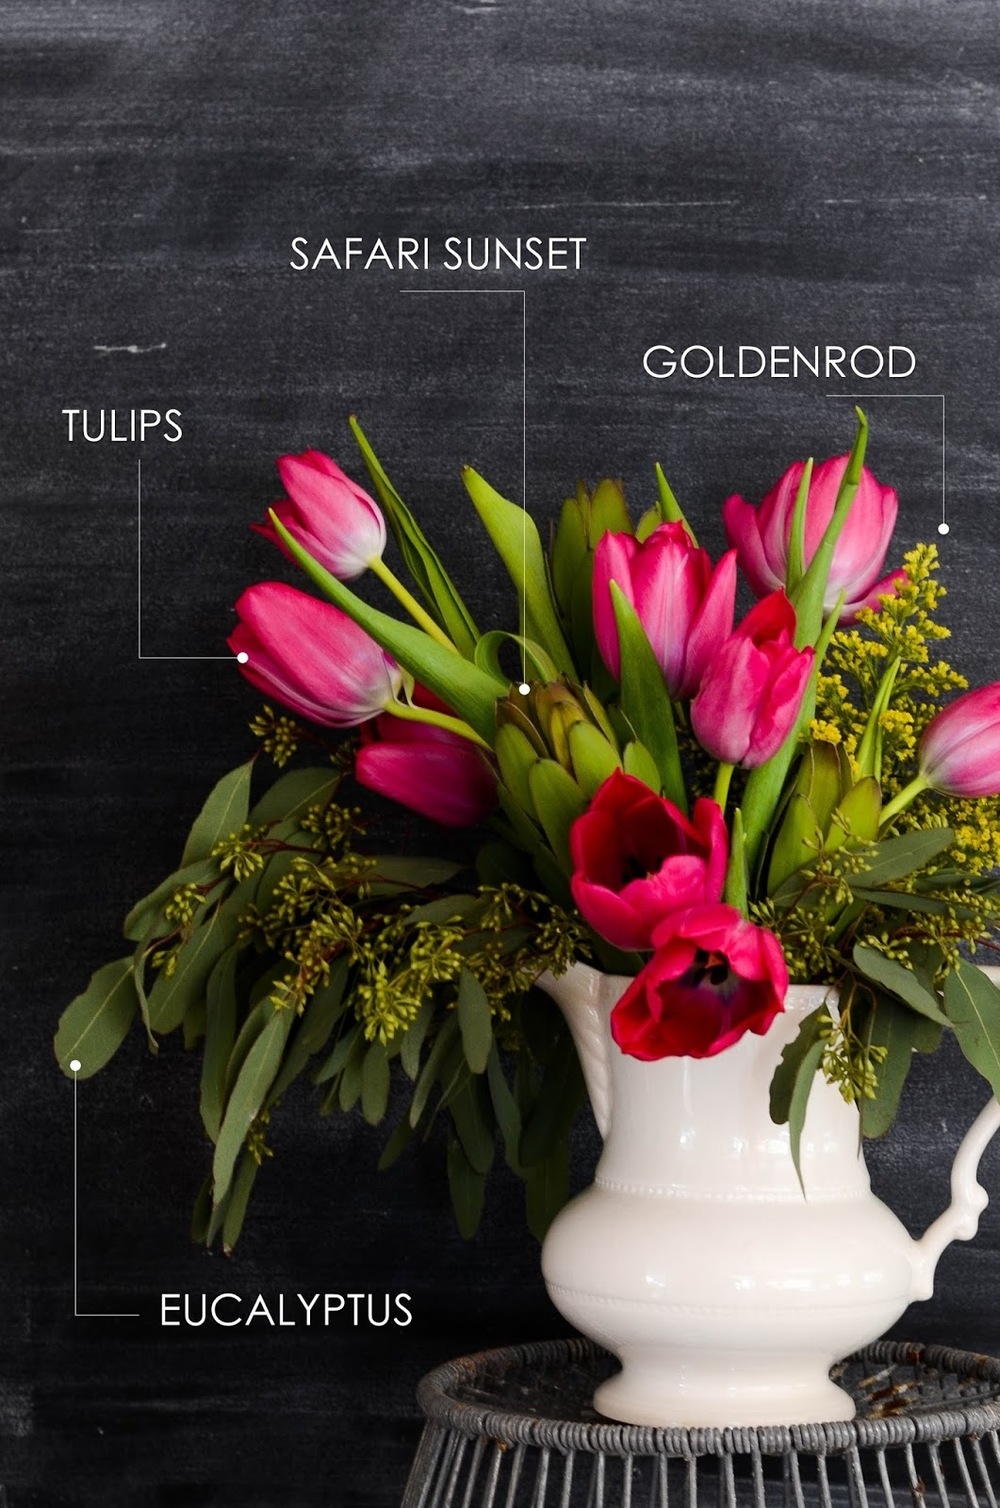 Tulip%2BFloral%2BArrangement%2C%2BGrocery%2BStore%2BFlower%2BArrangement%2B(5).jpg